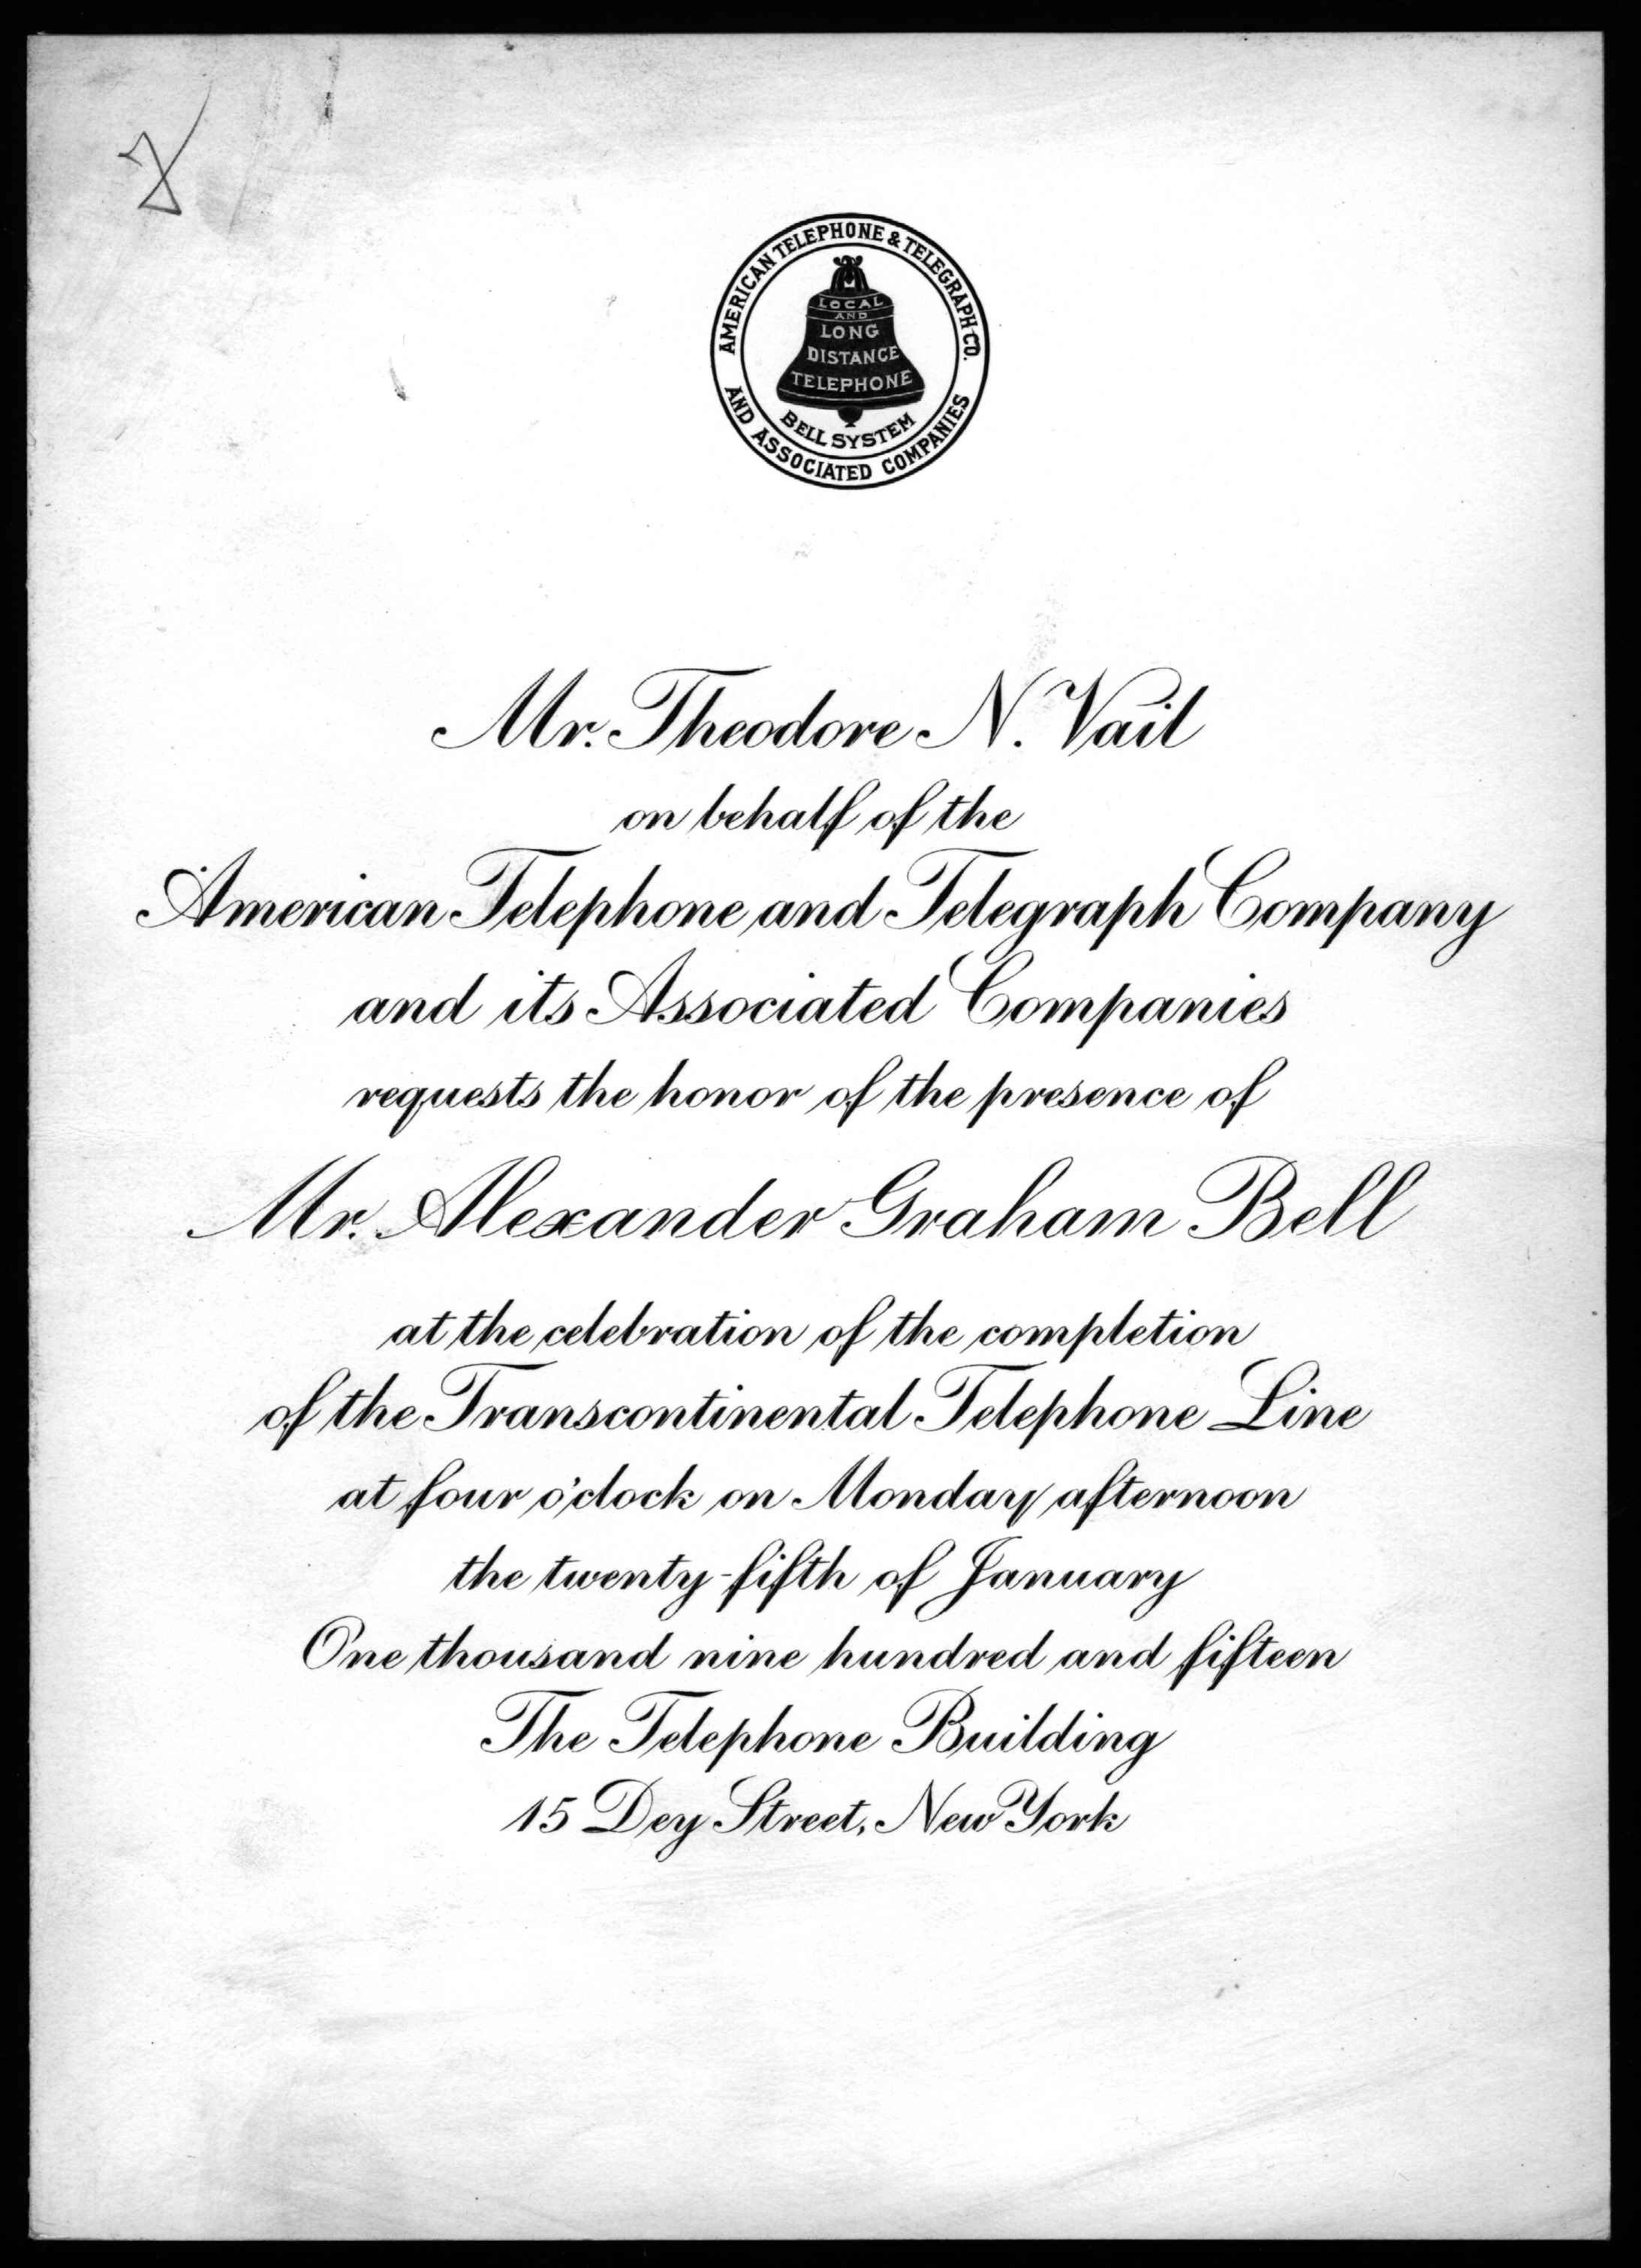 Fileinvitation from theodore n vail to alexander graham bell fileinvitation from theodore n vail to alexander graham bell 1915 transcription stopboris Gallery